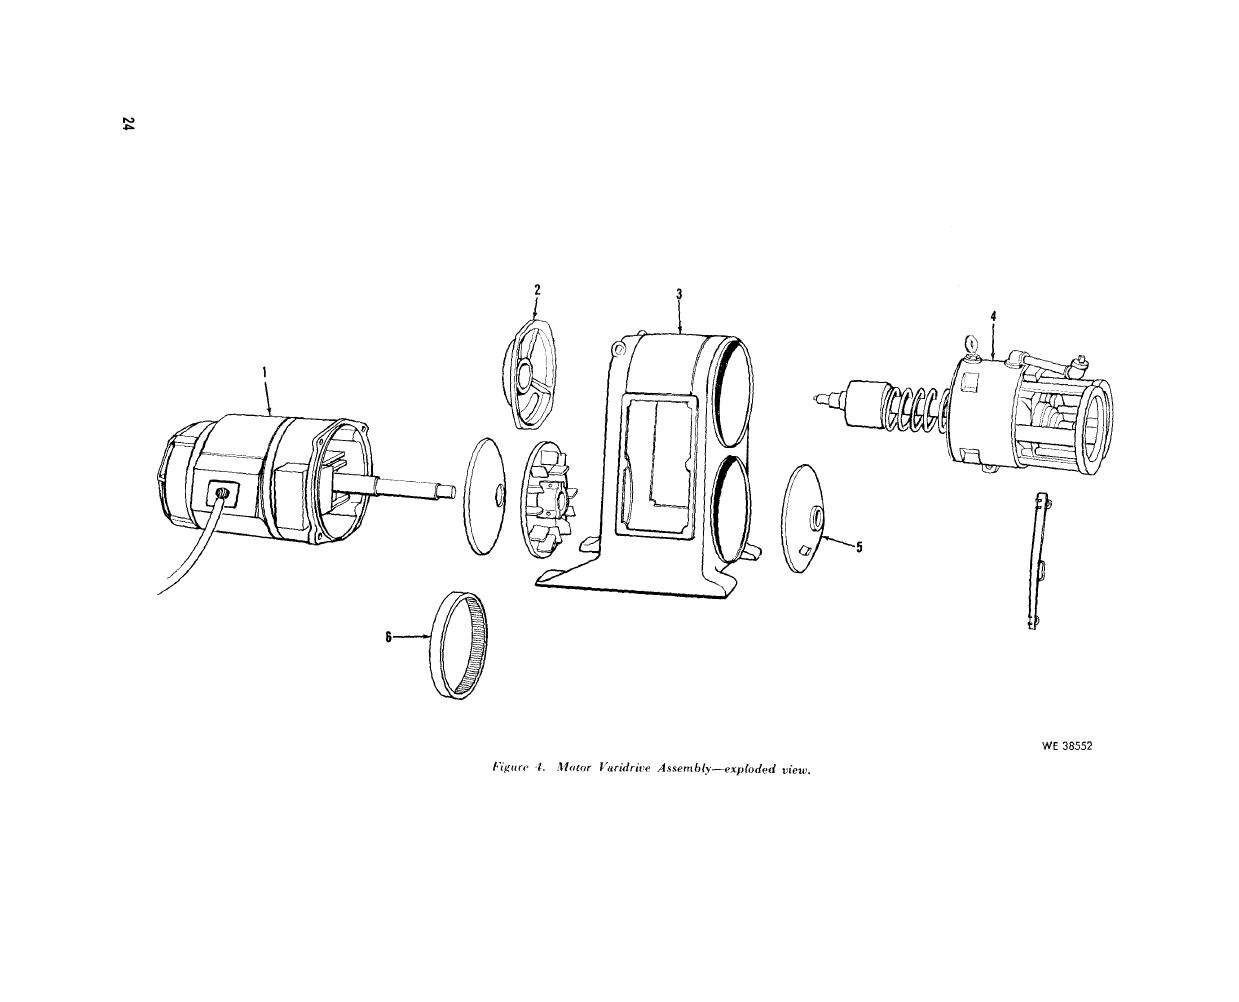 Figure 4 Motor Varidrive Assembly